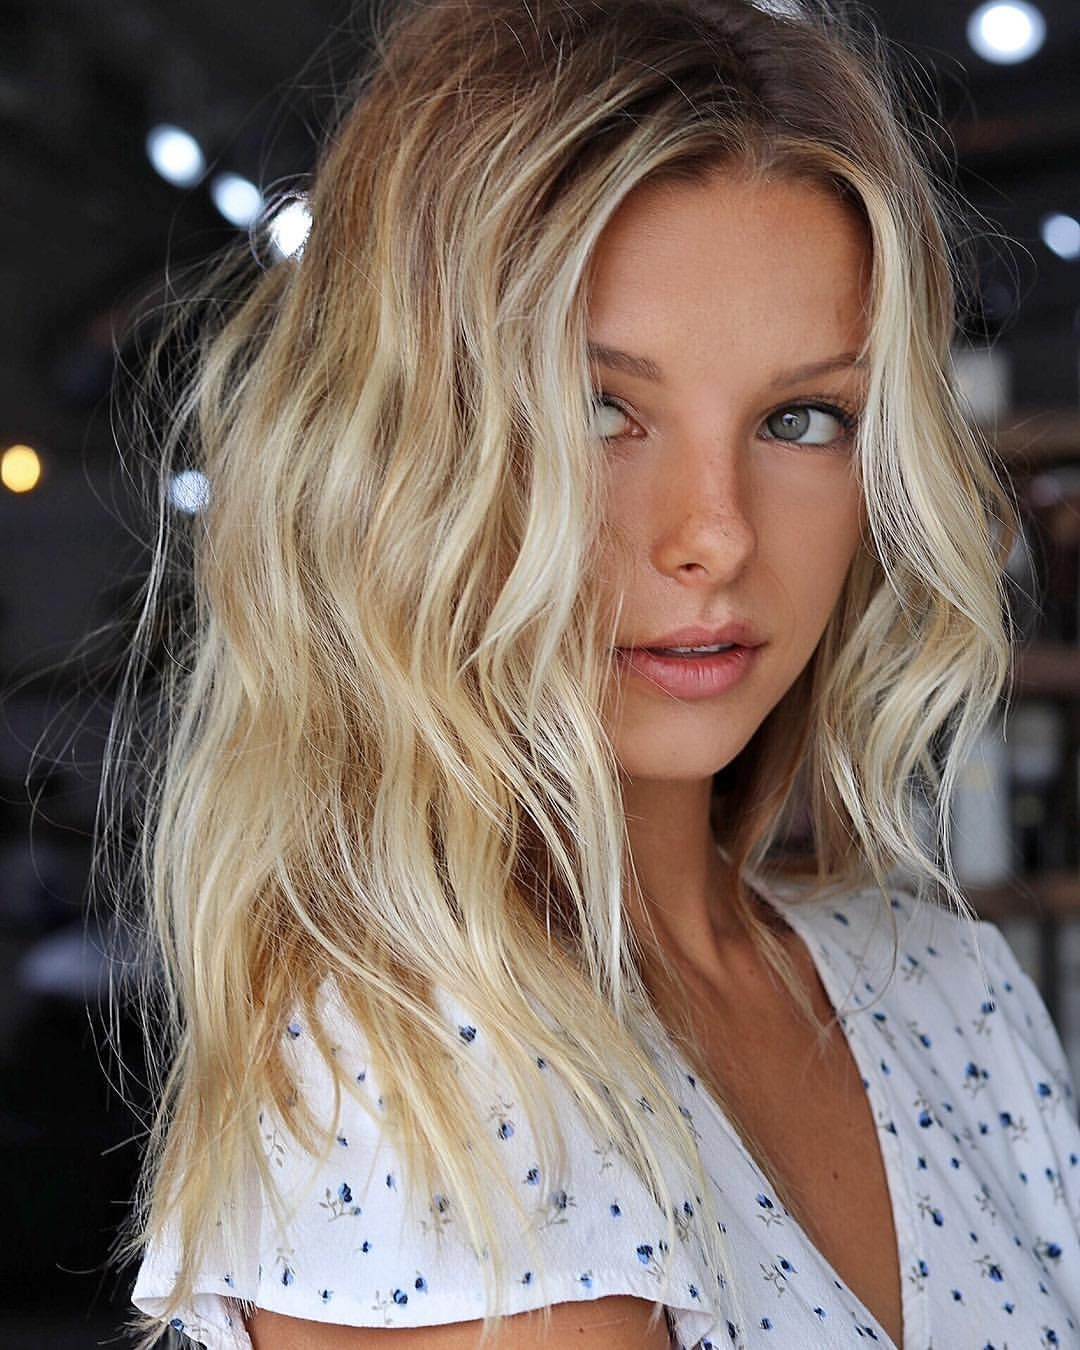 Short hair, long hair, braids. Hair & Beauty inspiration blonde, bobs, buns, brunette, hair inspiration, hair styles, blonde hair, curly hair, hair style ideas.